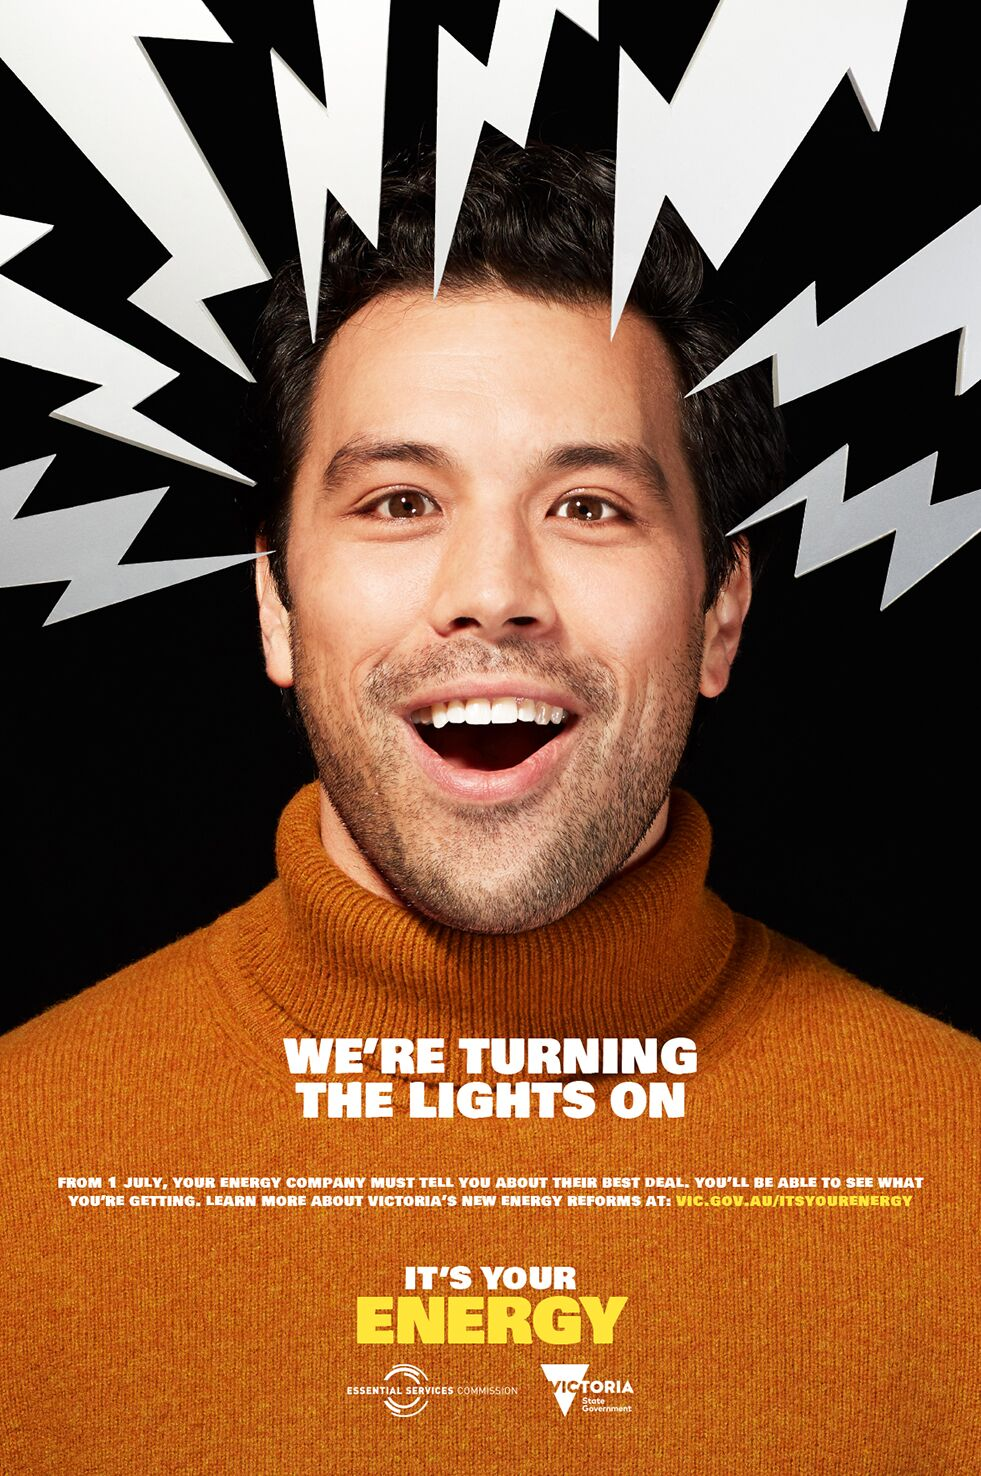 ESSENTIAL SERVICES COMMISSION GIVES PEOPLE BACK THEIR ENERGY IN NEW CAMPAIGN BY ICON AGENCY